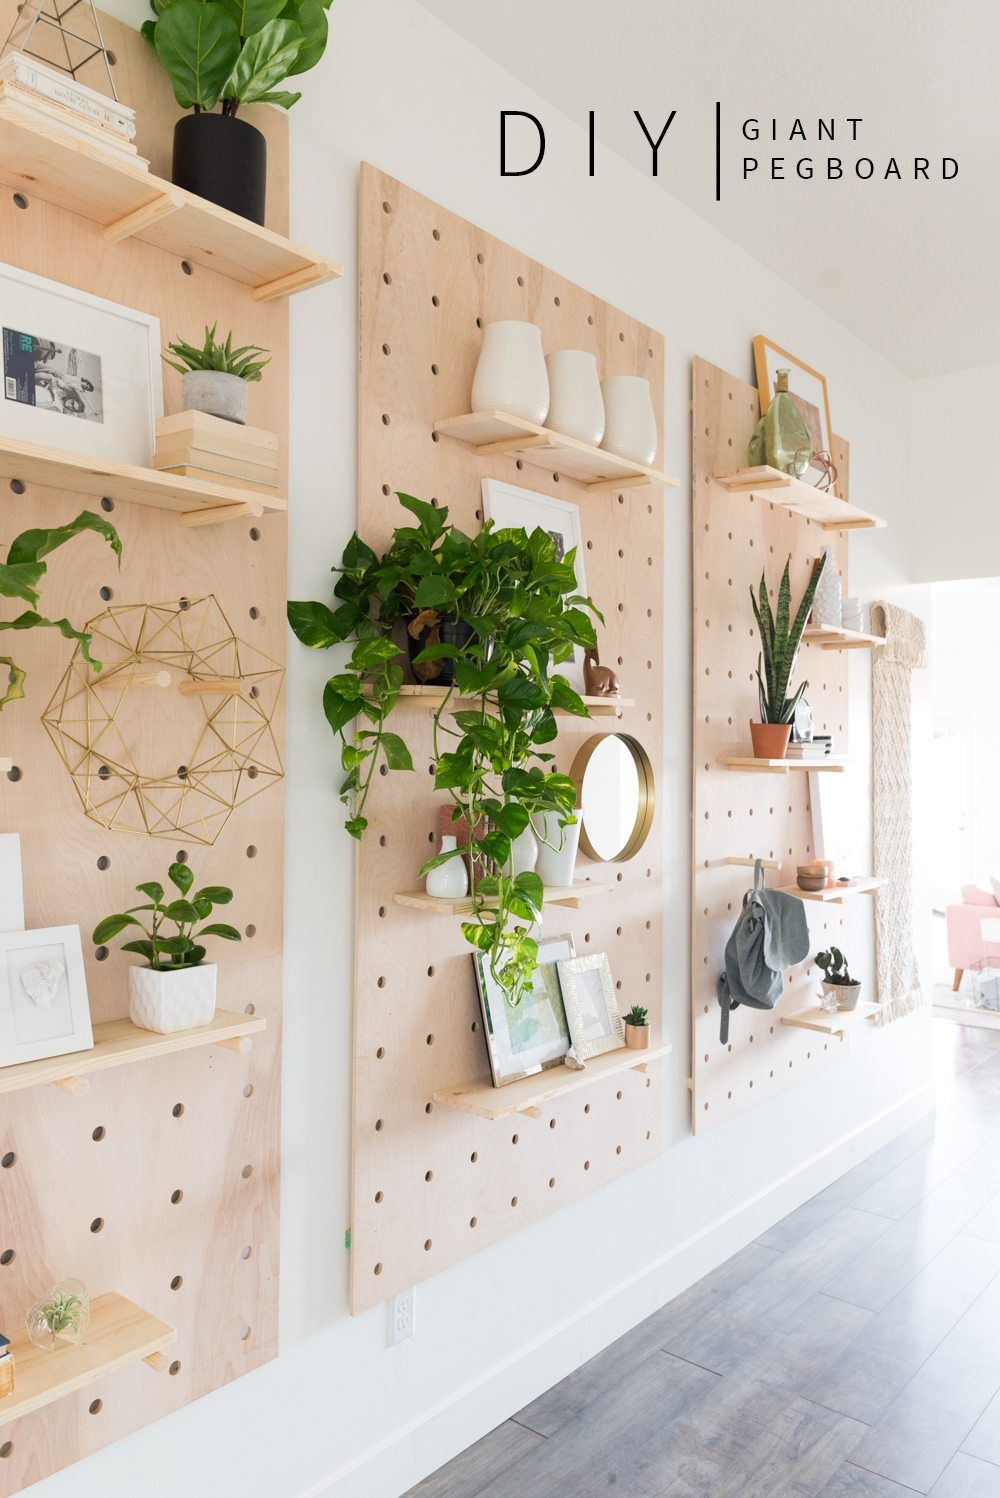 17 Diy Home Decor Projects Easy Craft Ideas For Decorating Cool Electronics Galleryhipcom The Hippest Galleries